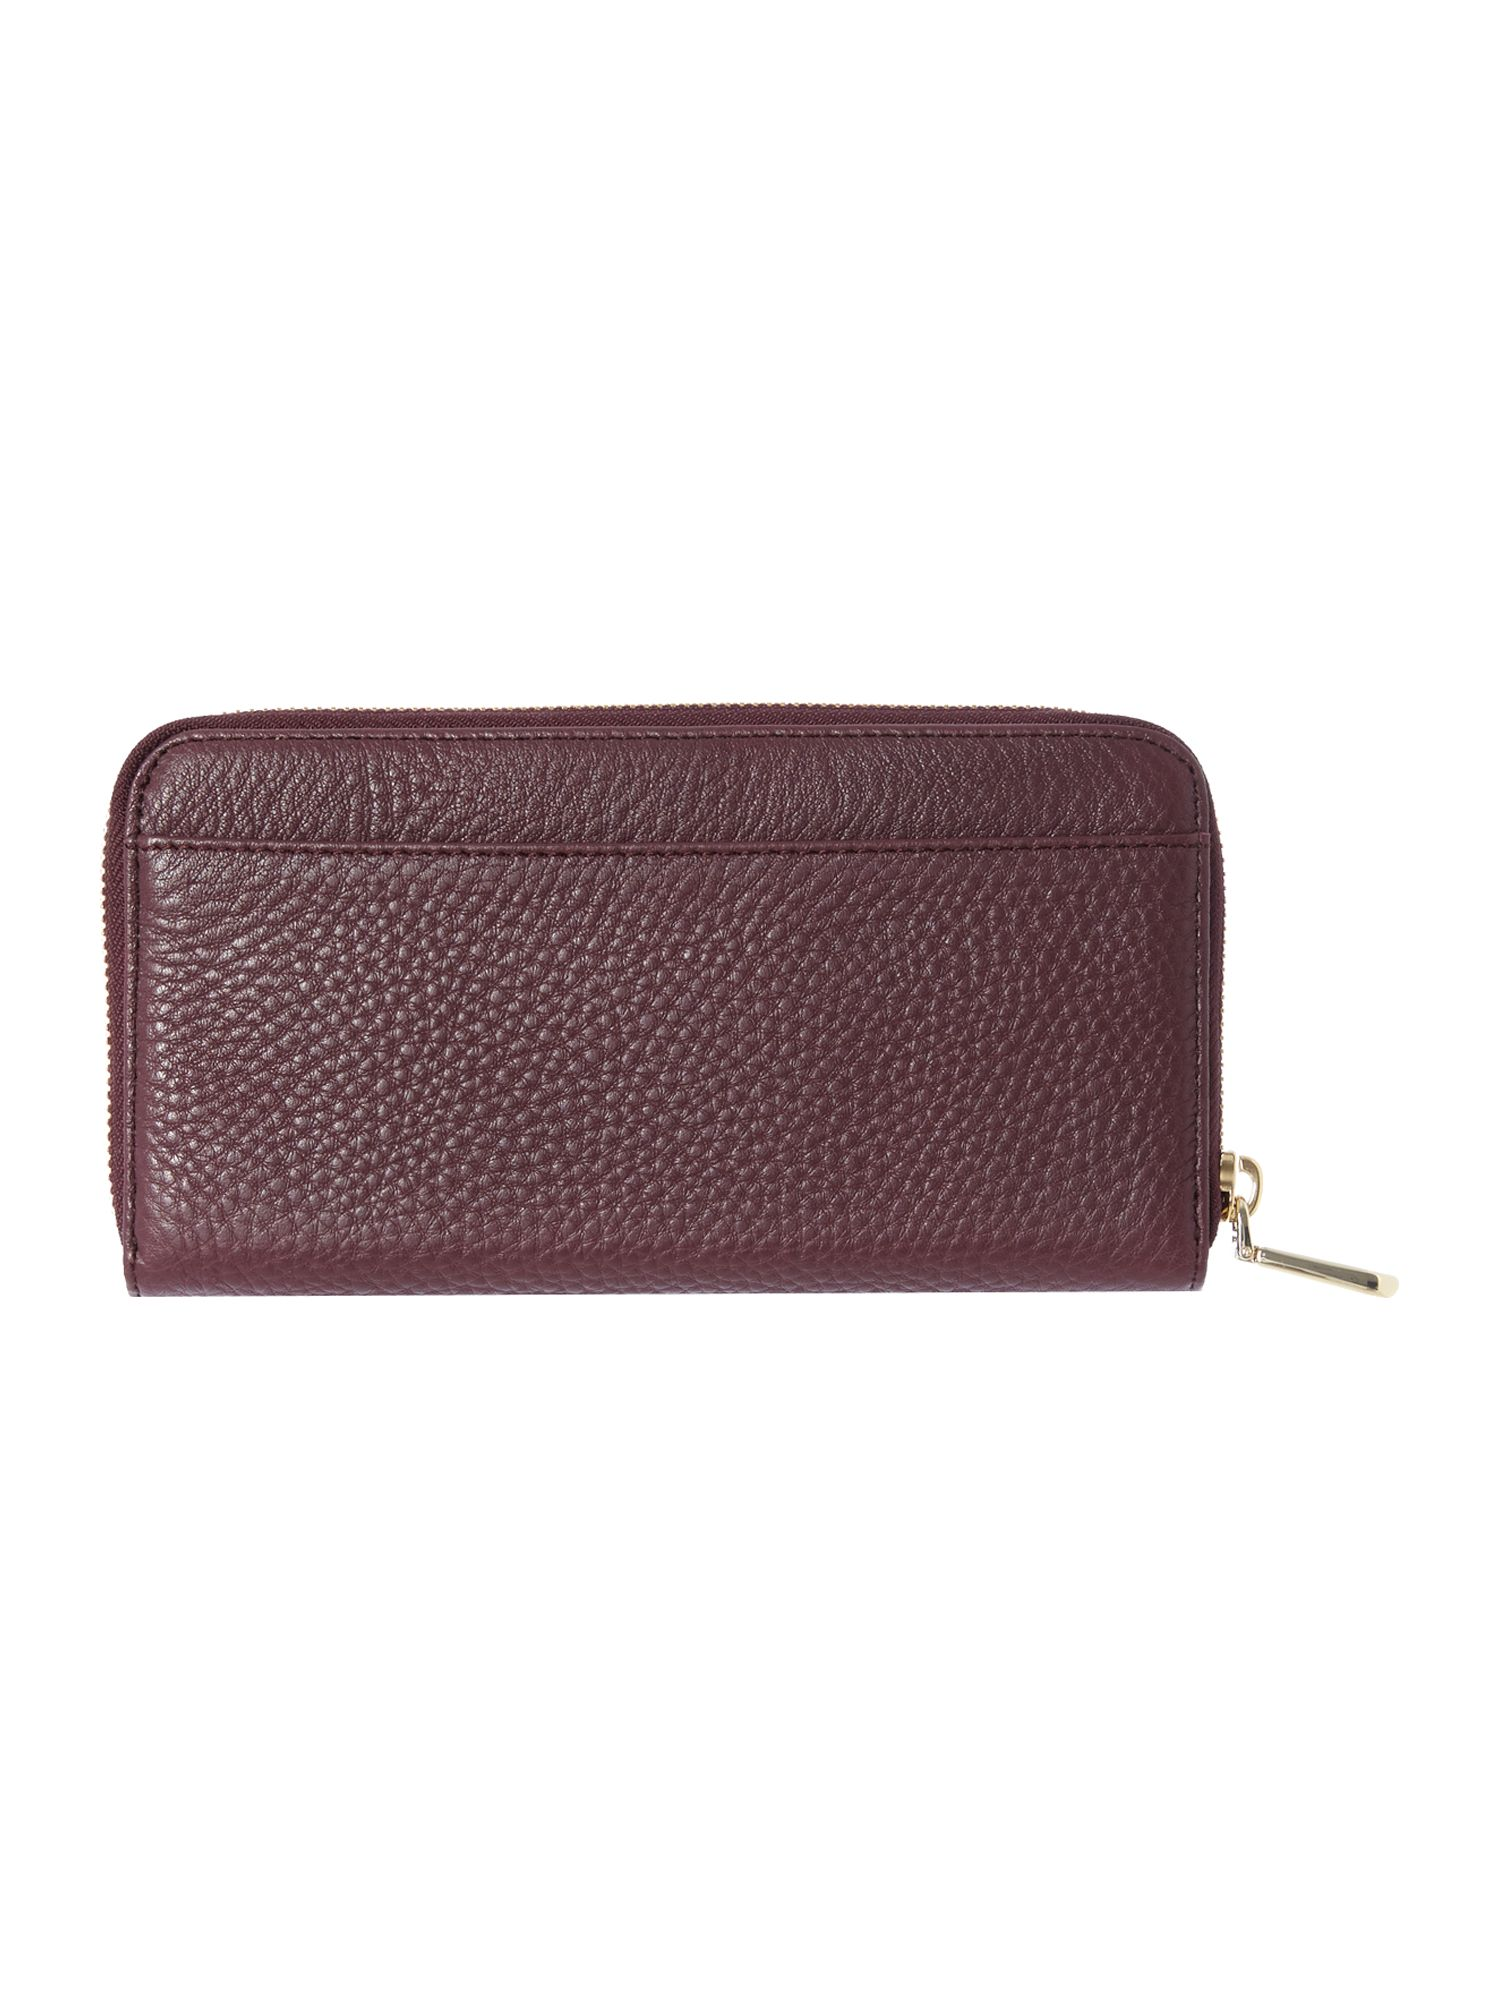 Tribeca purple large zip around purse